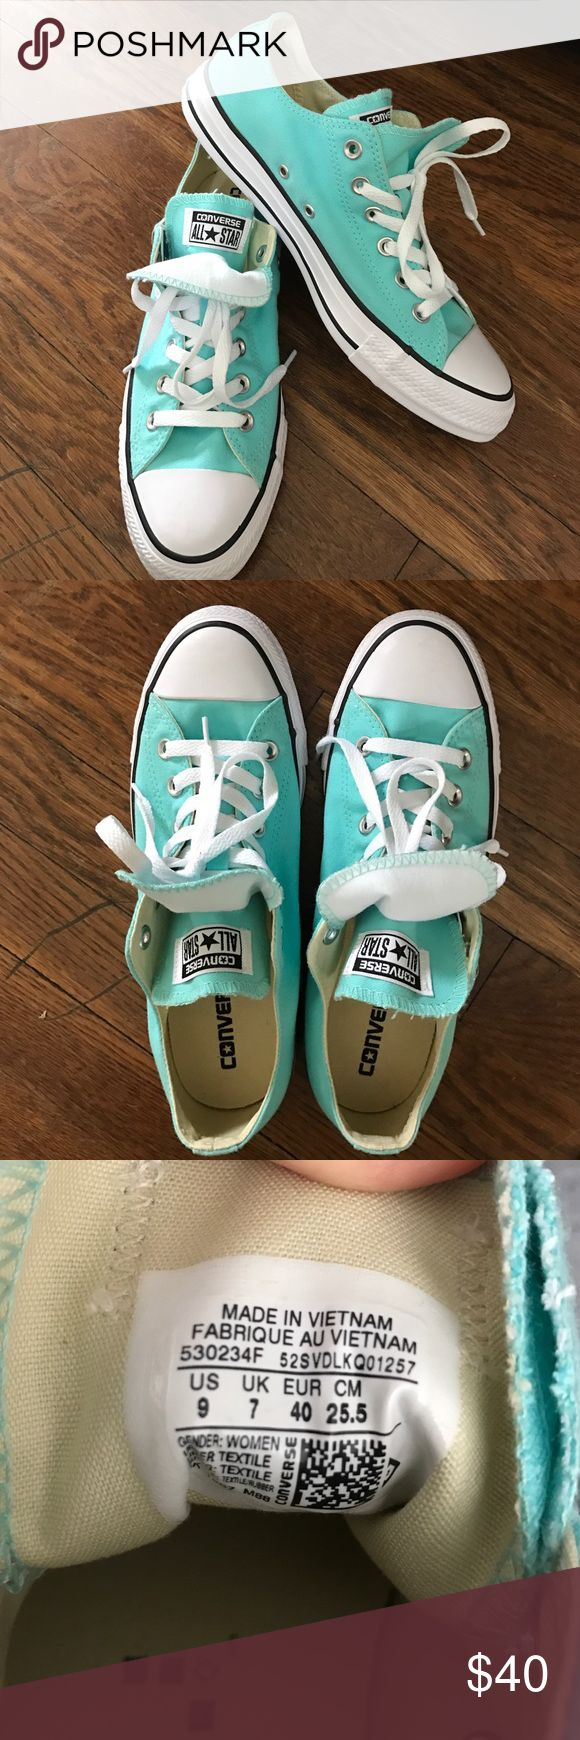 Turquoise Converse All-Star size 9 These turquoise converse are brand new, never worn, size 9. They have a double tongue and are perfect for spring! $40 obo. Converse Shoes Sneakers